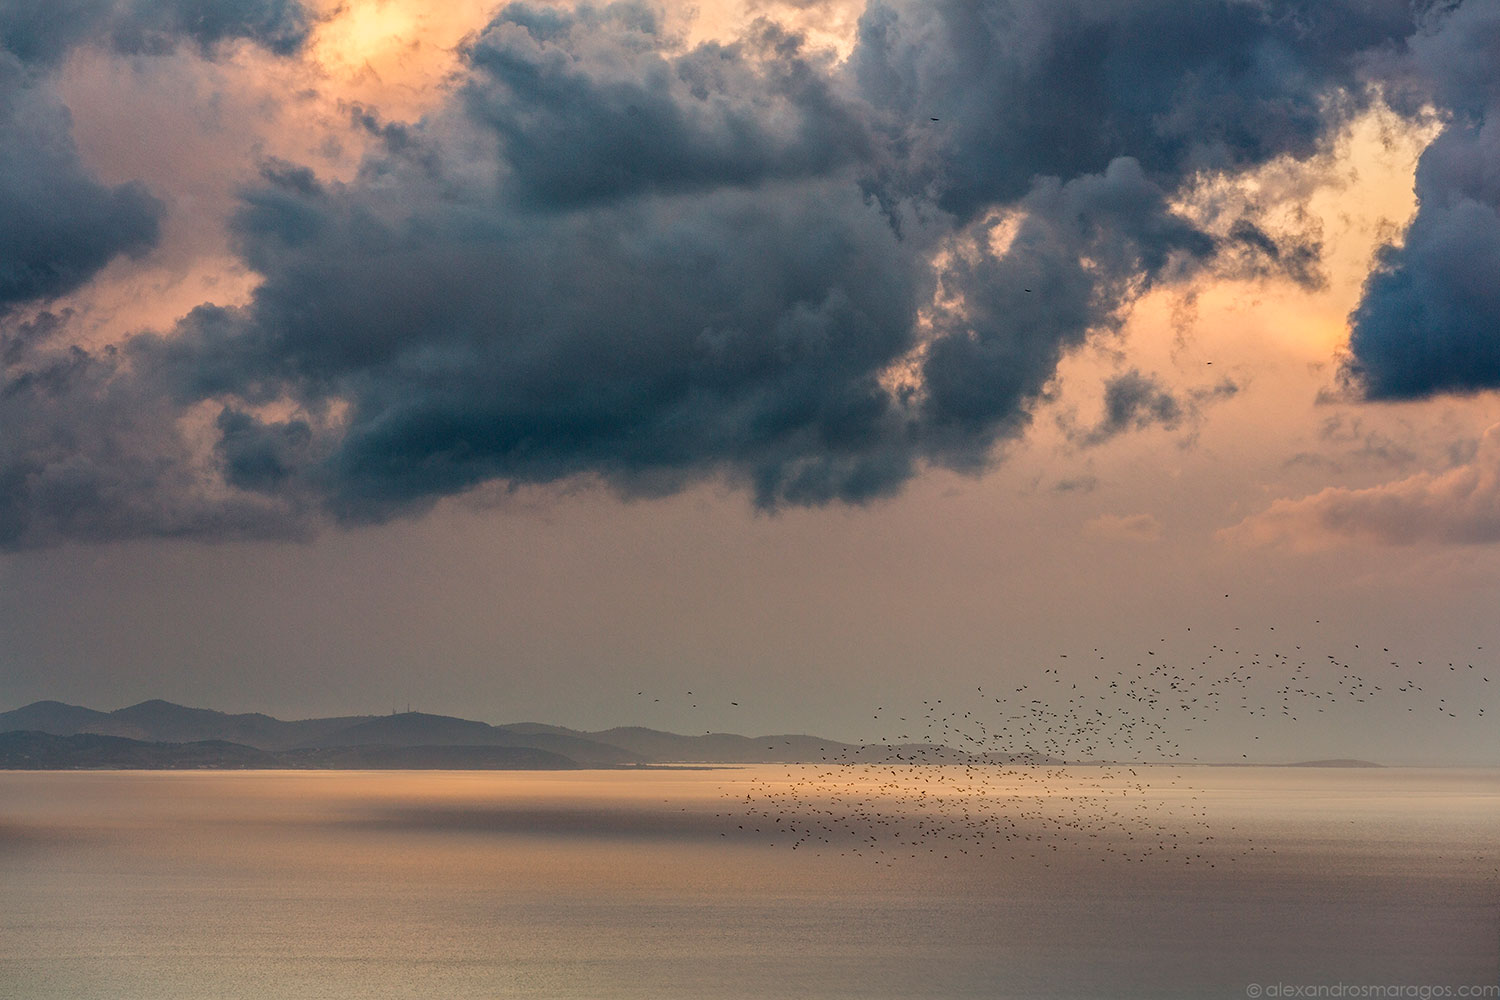 Alexandros Maragos Nature and Landscape Photography